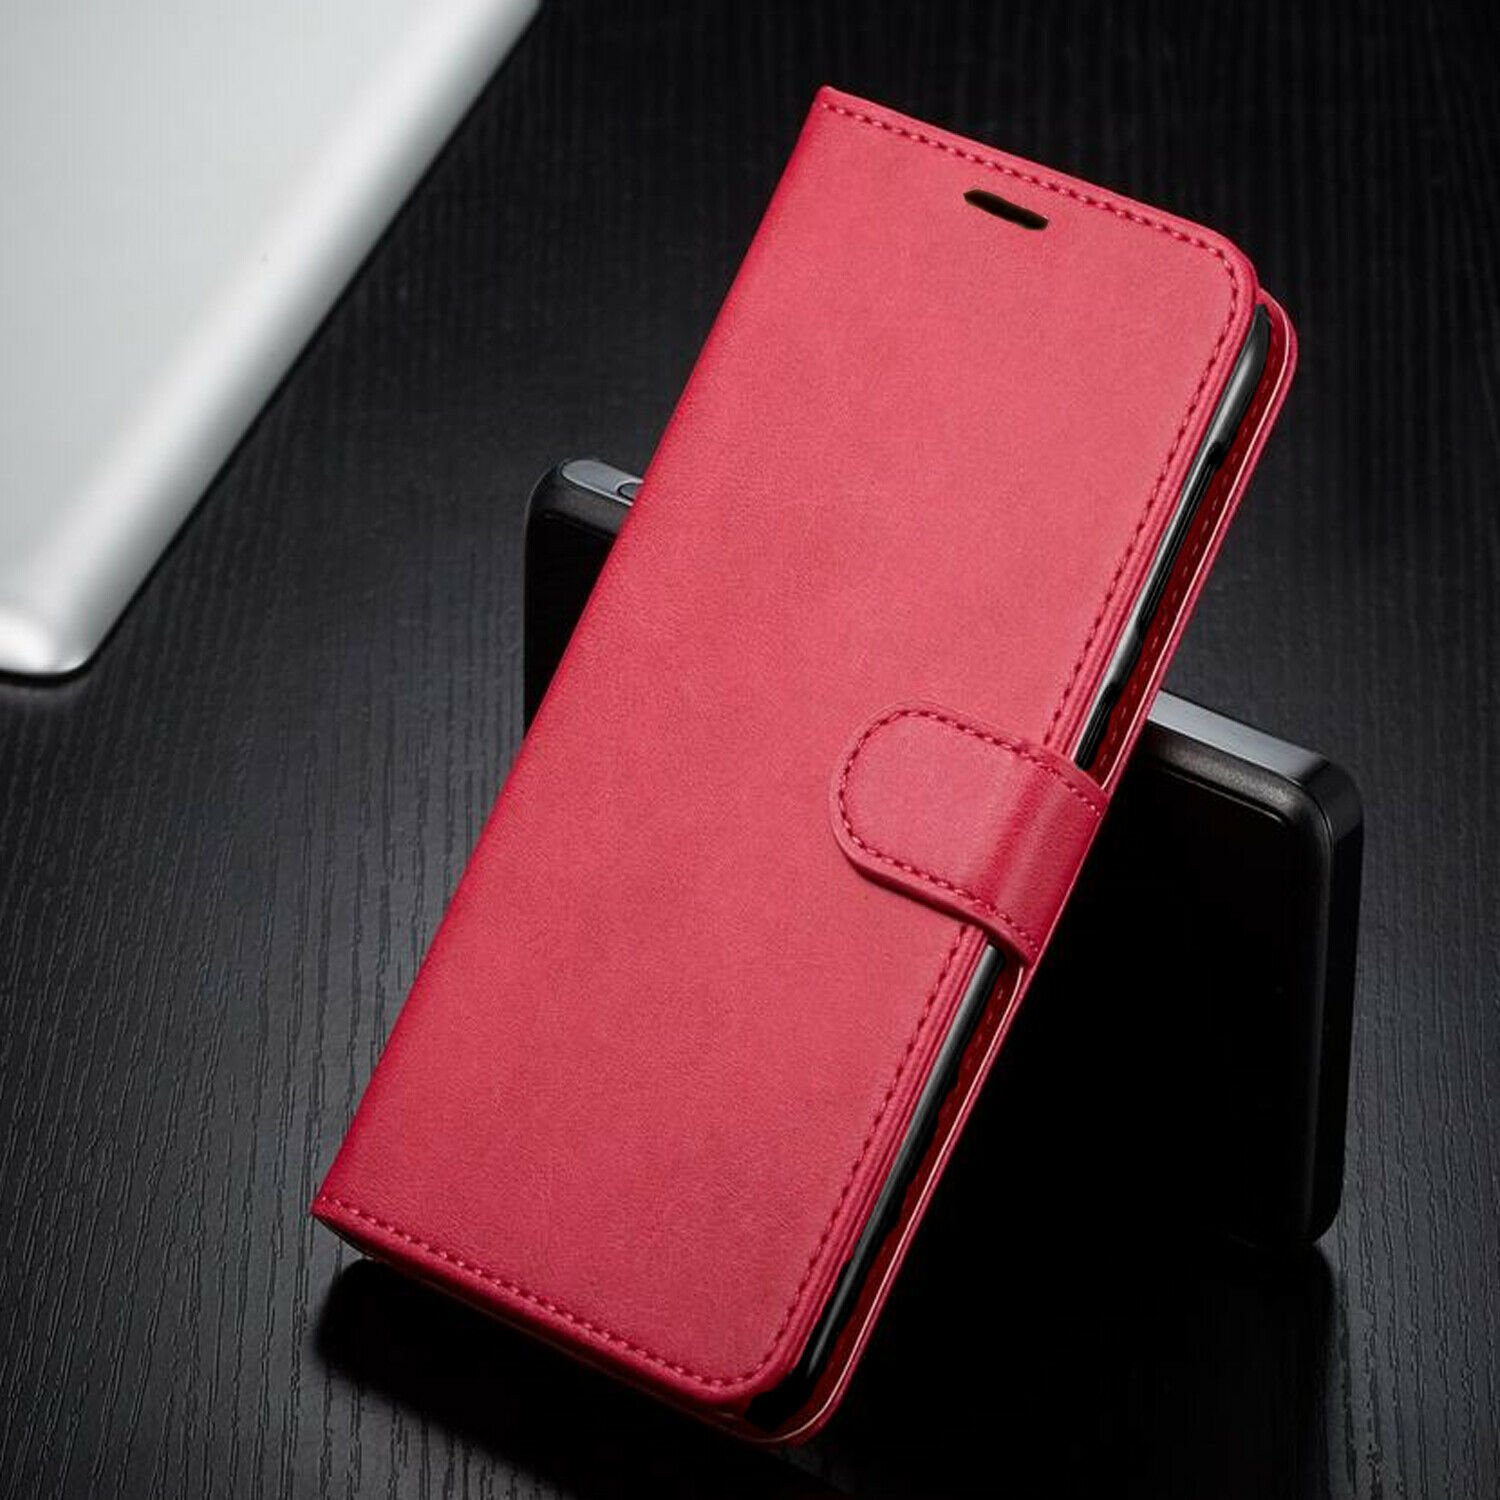 thumbnail 23 - For iPhone 7 / 8 / 7 Plus Case, Premium Wallet Cover + Tempered Glass Protector